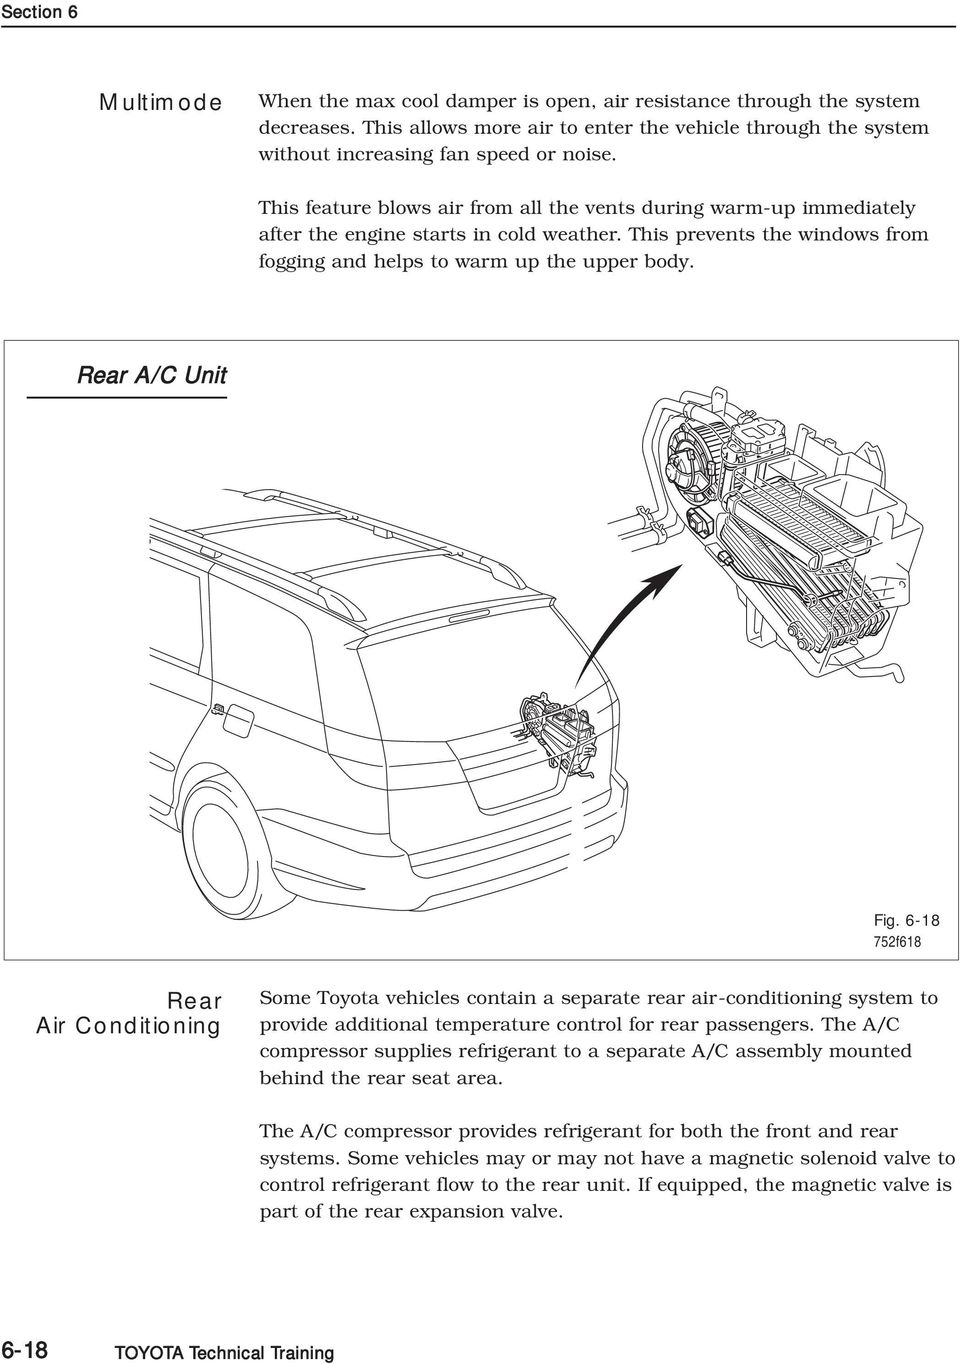 Section 6  Introduction to Automatic A/C  Automatic